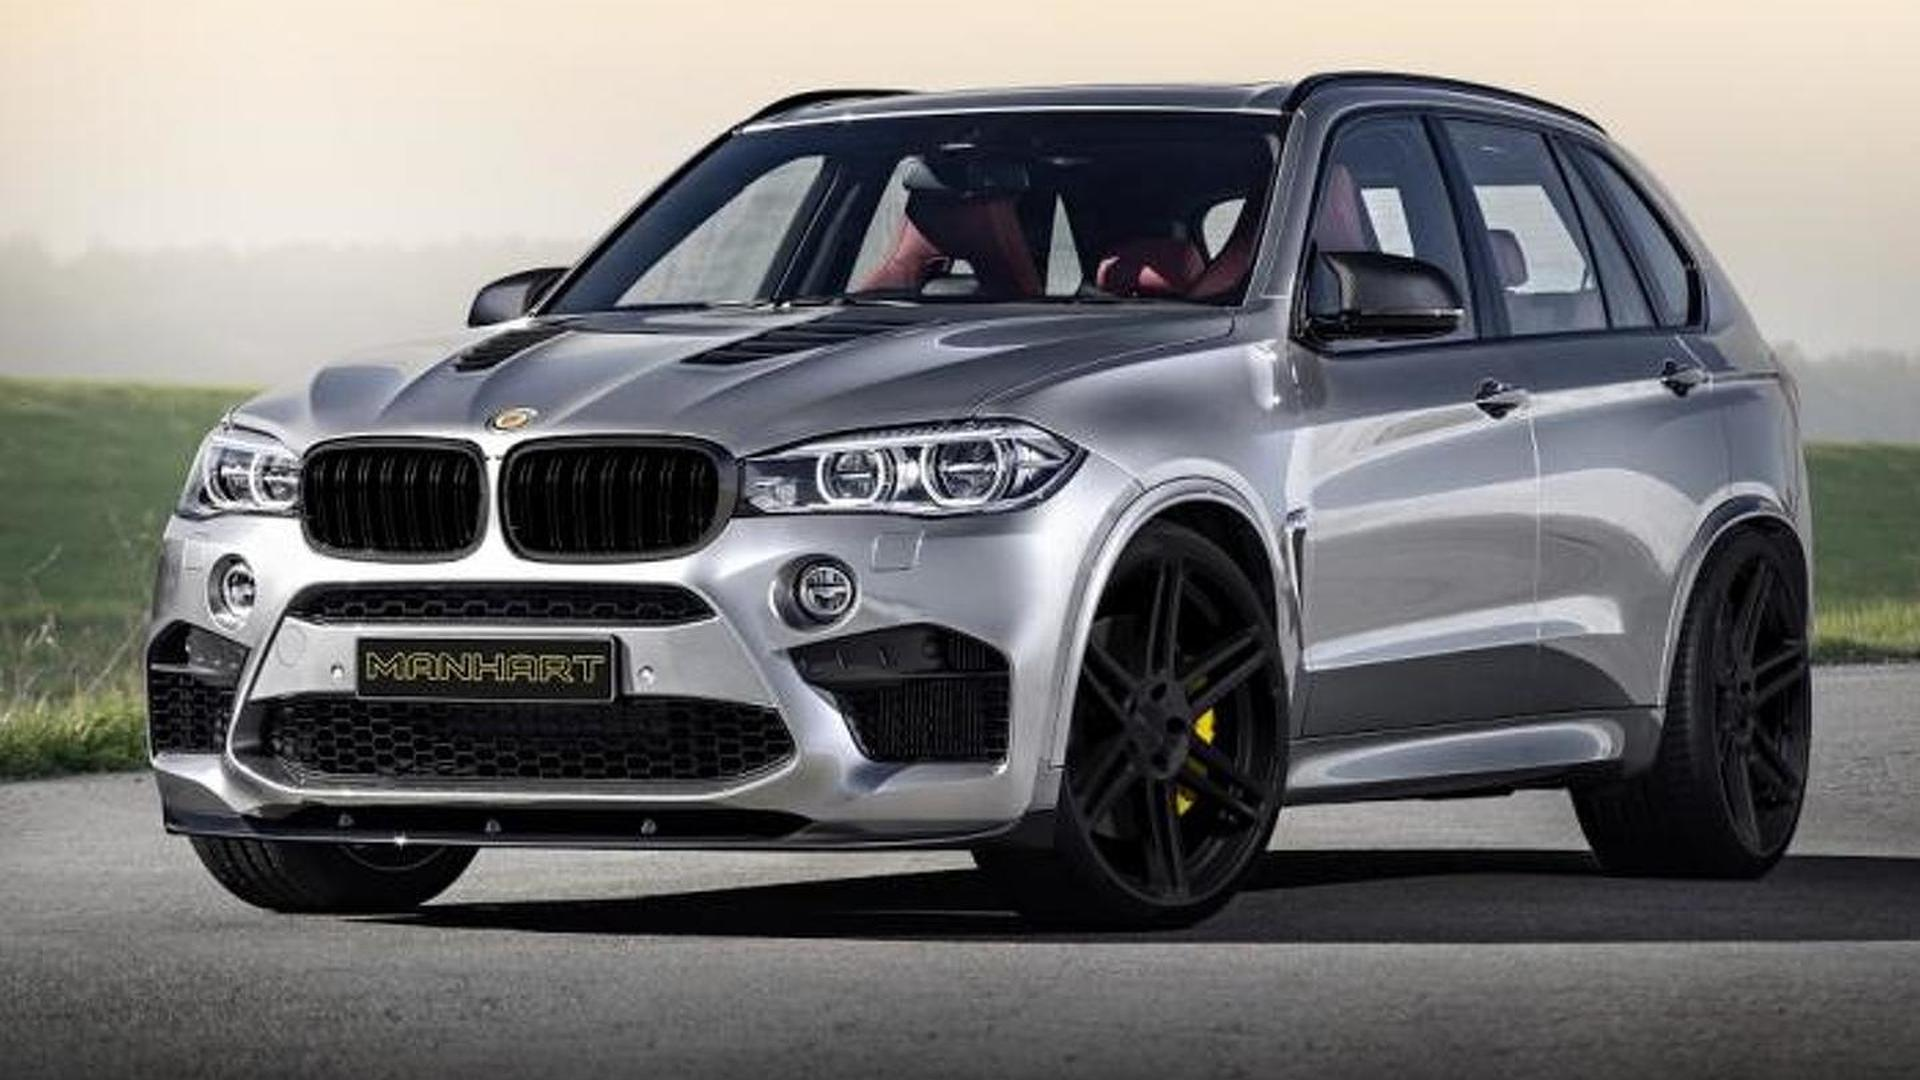 Bmw X5m Tuning Uk GPower BMW X5 M now with 750 hpStyling Tuning for